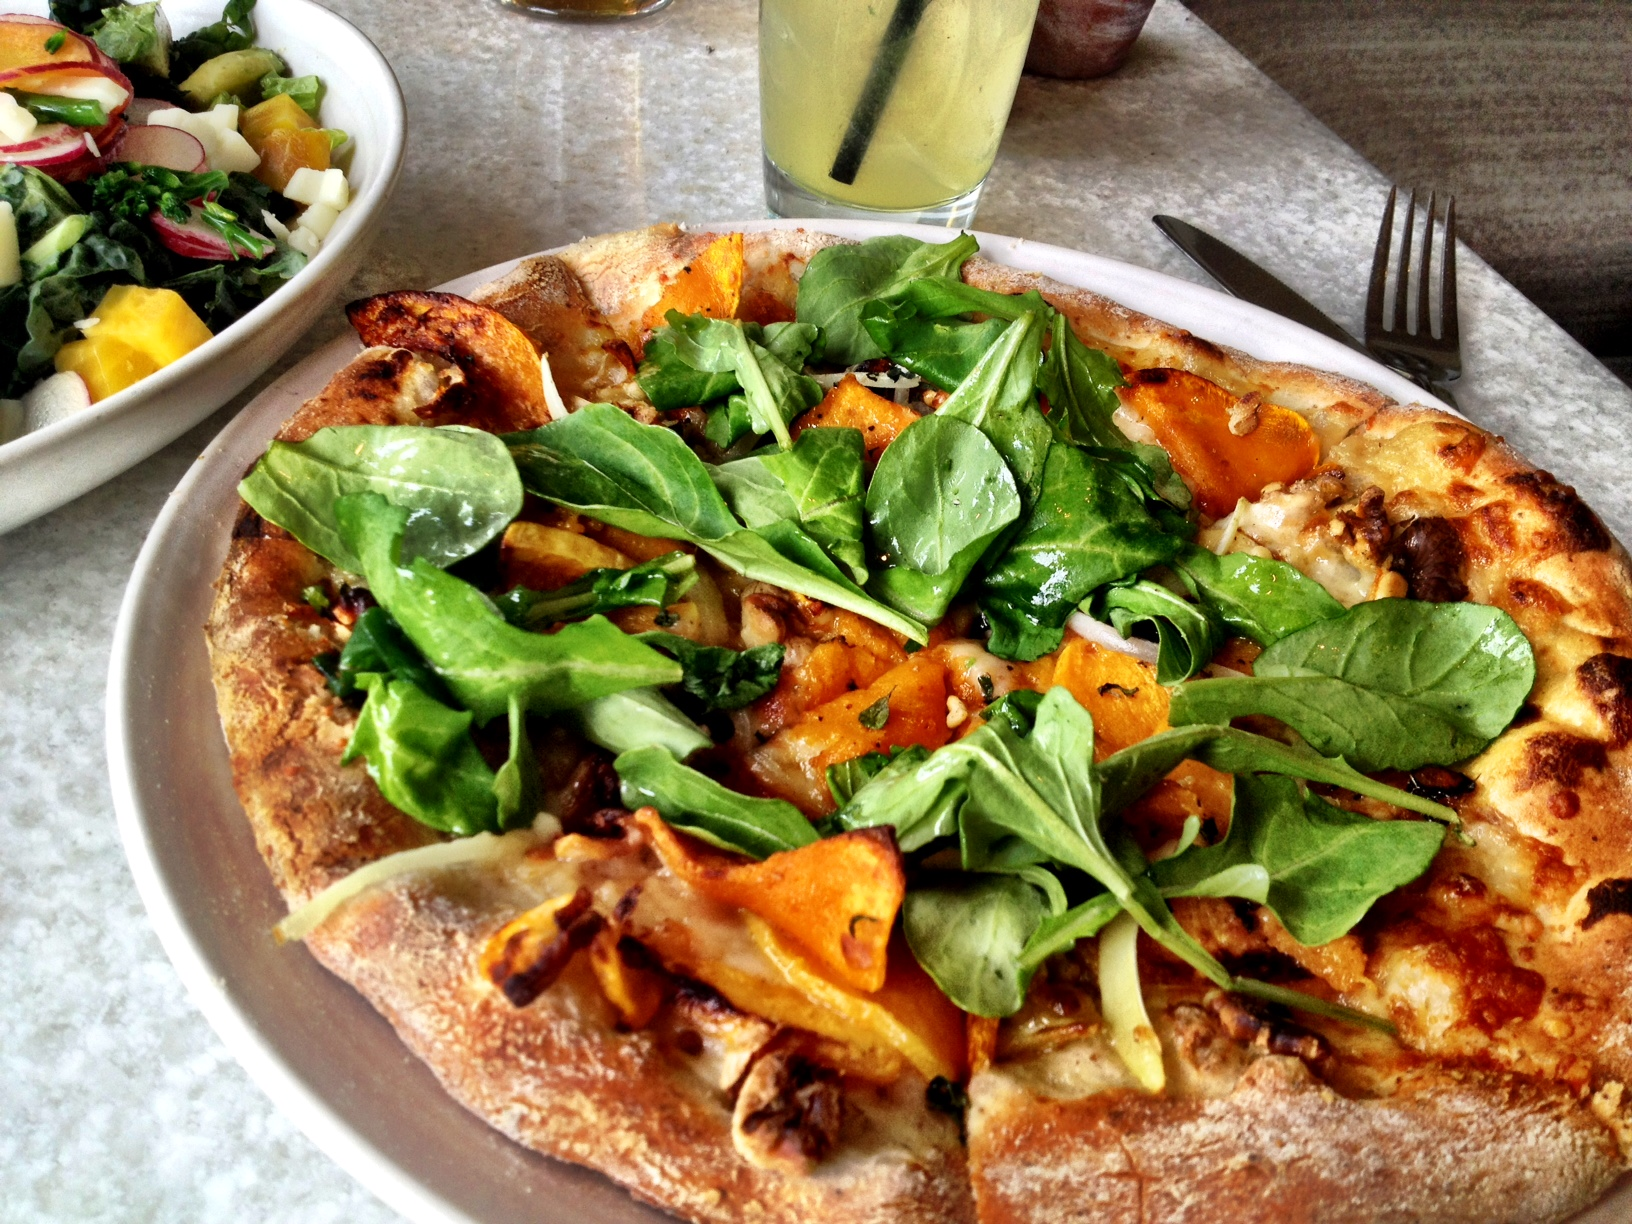 Butternut squash pizza from True Food